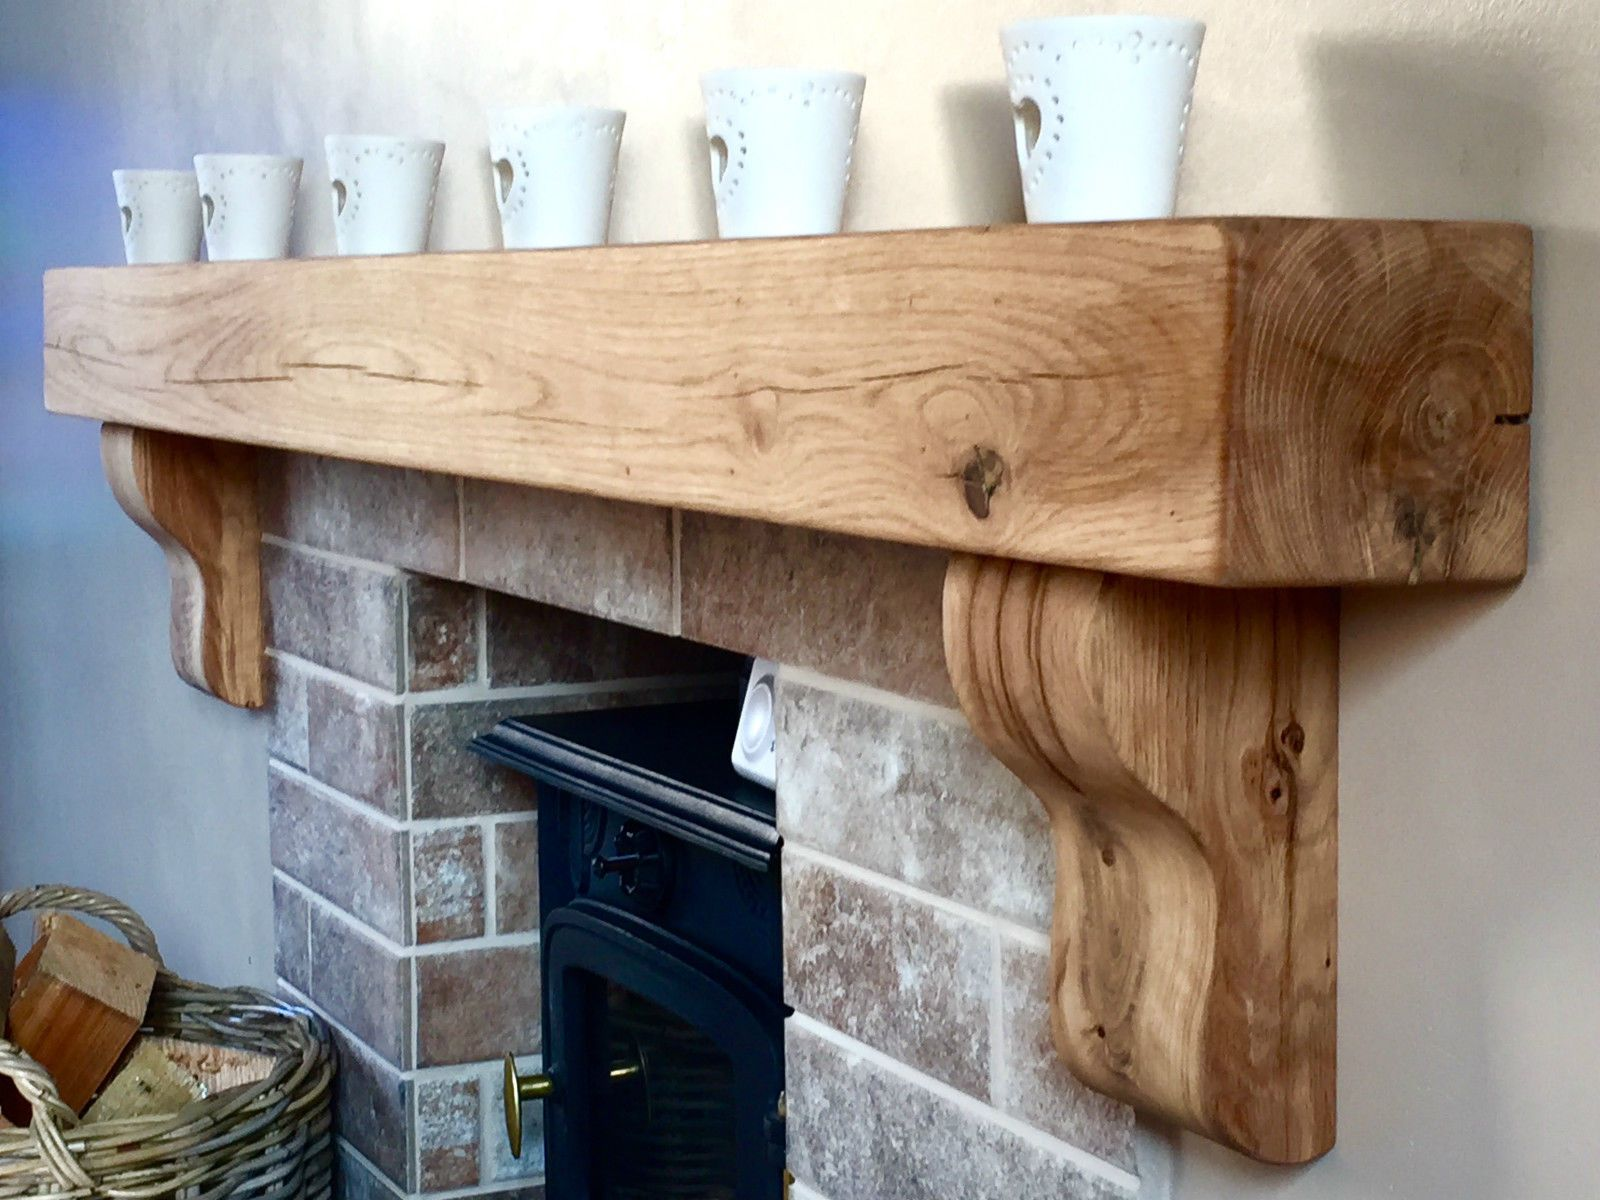 details about oak beam with corbels floating mantel shelf brackets solid fireplace distressed wood dark coat rack vitrex grippa self adhesive underlay small for cable box shelves